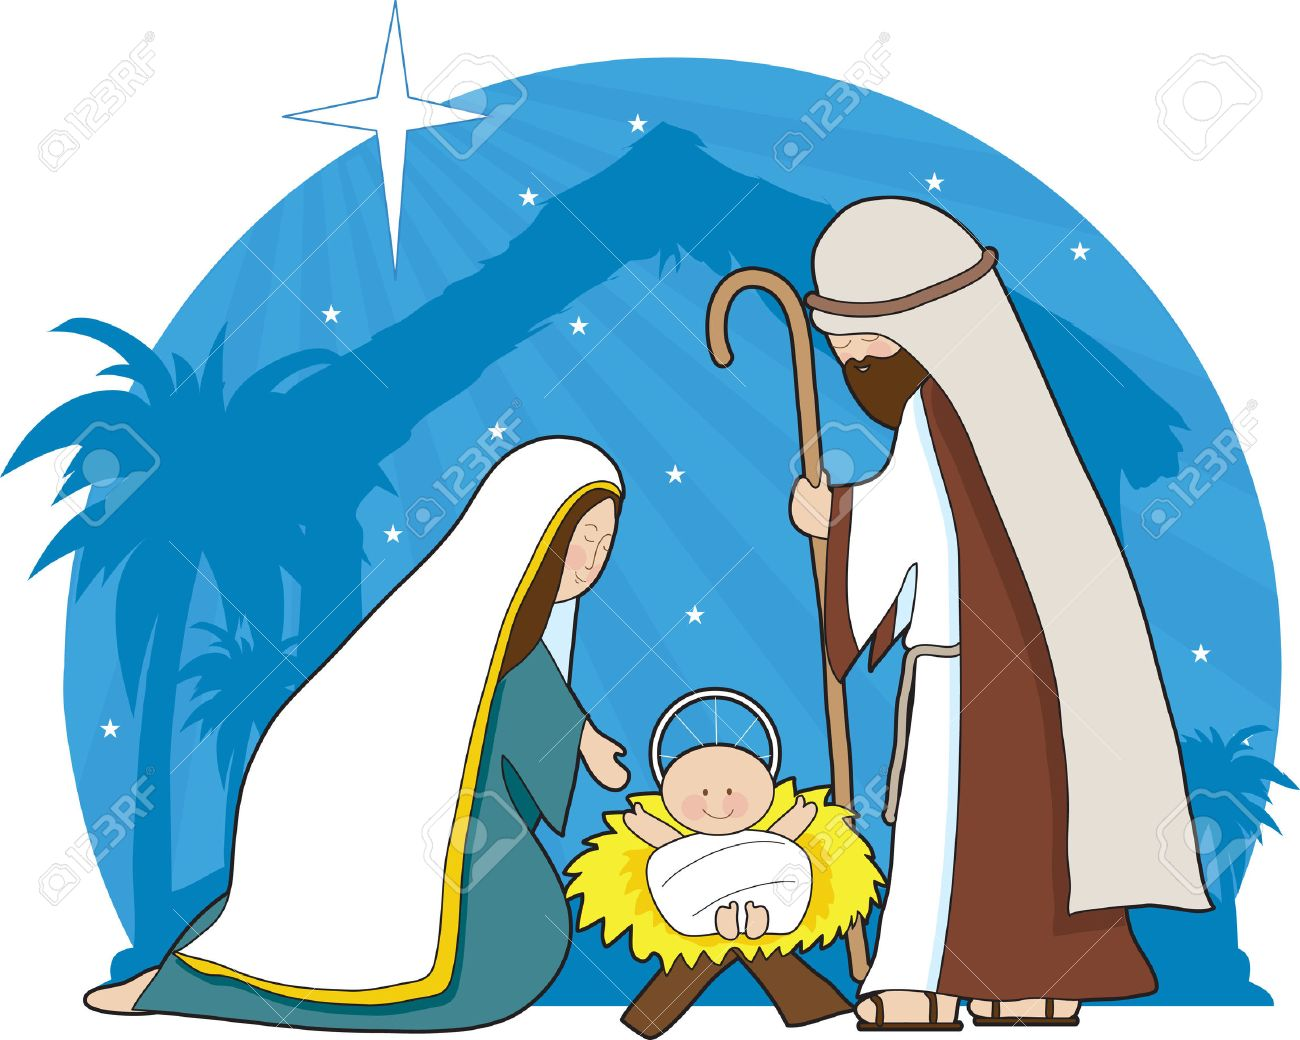 A nativity scene with the star of Bethlehem in the background.